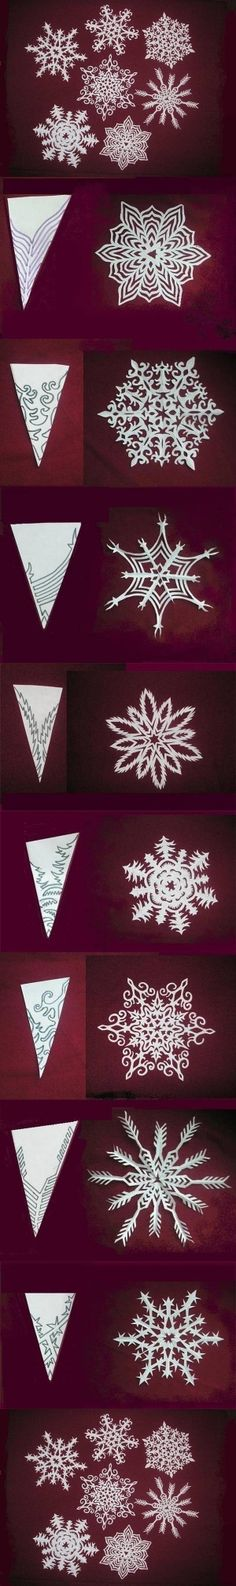 DIY Snowflakes Paper Pattern Tutorial DIY Snowflakes Paper Pattern Tutorial by diyforever